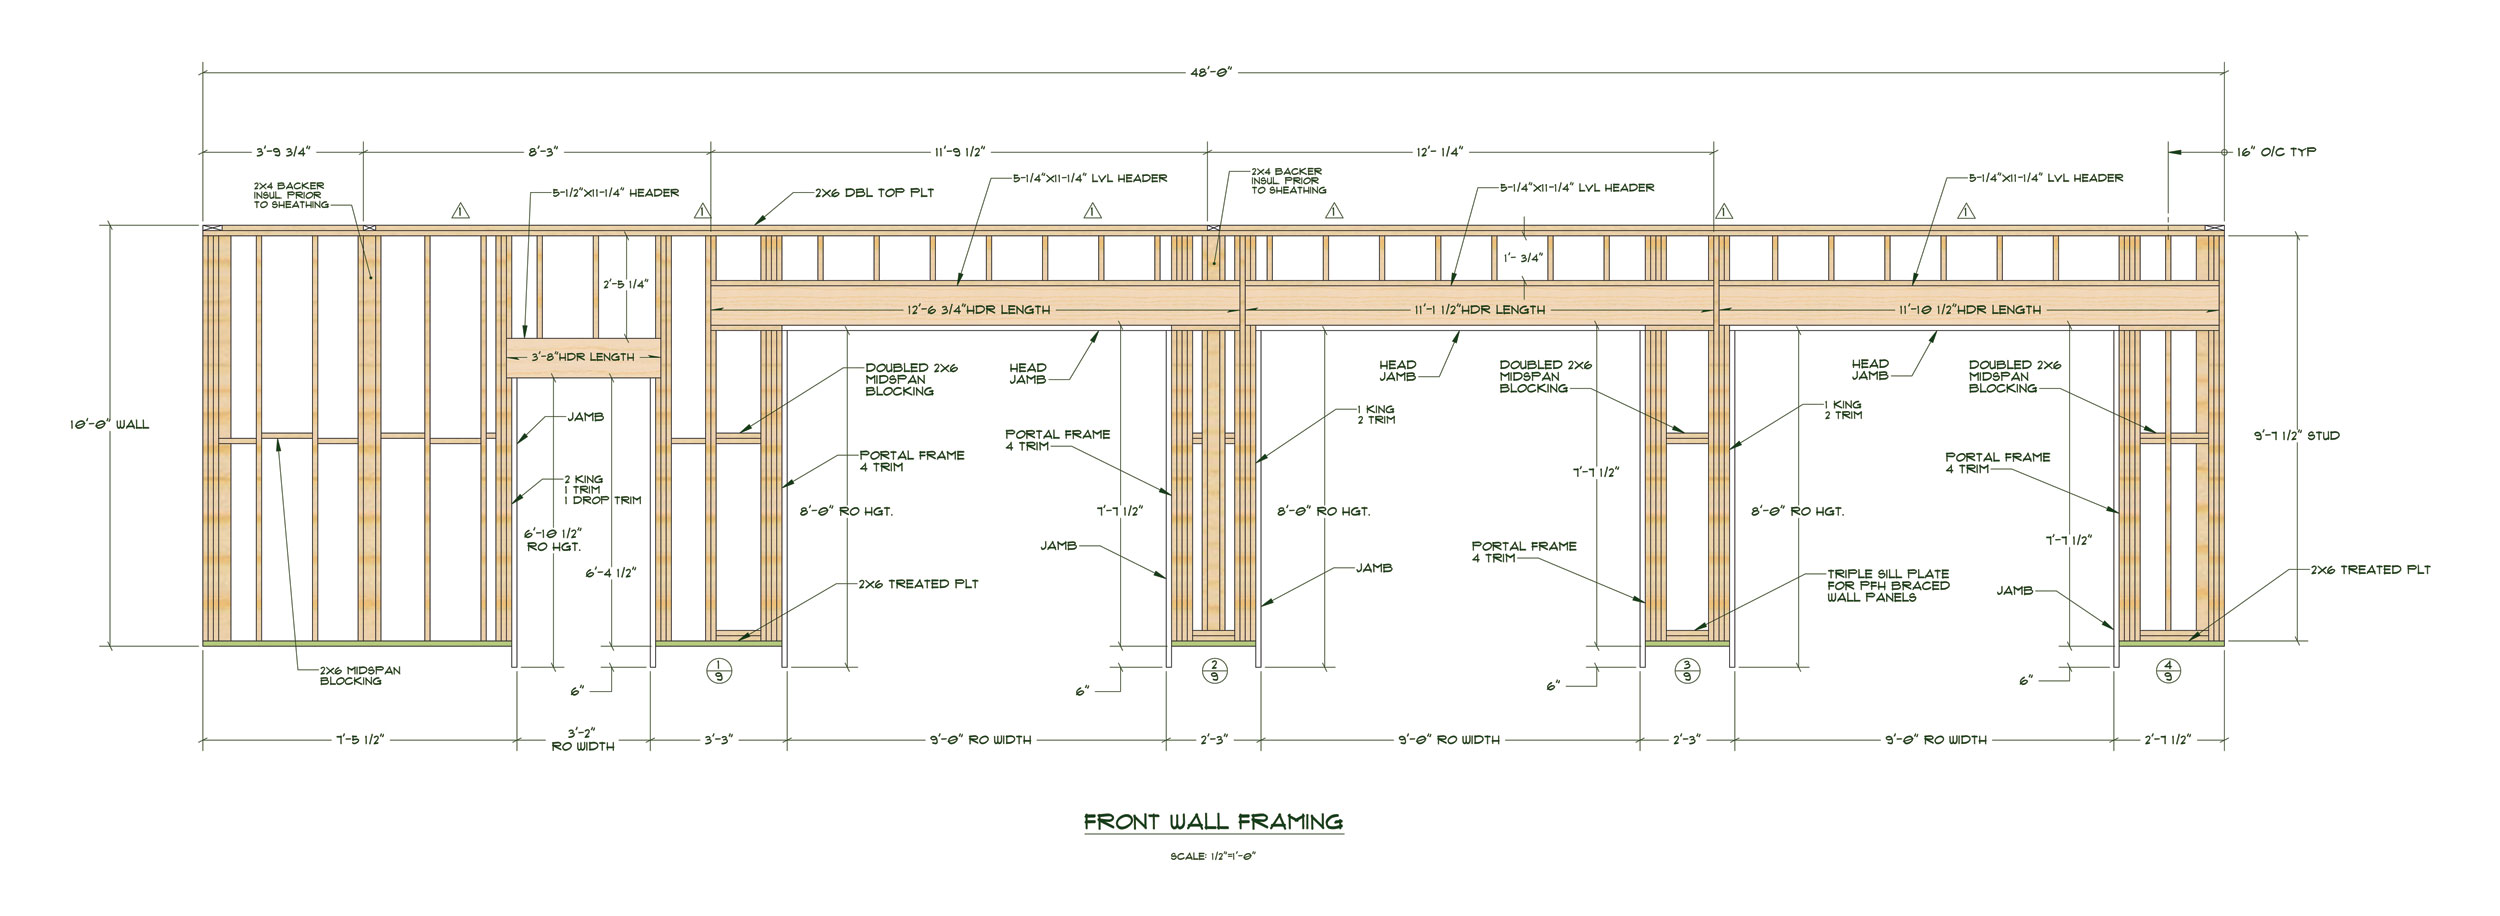 garage door framing detail quotes